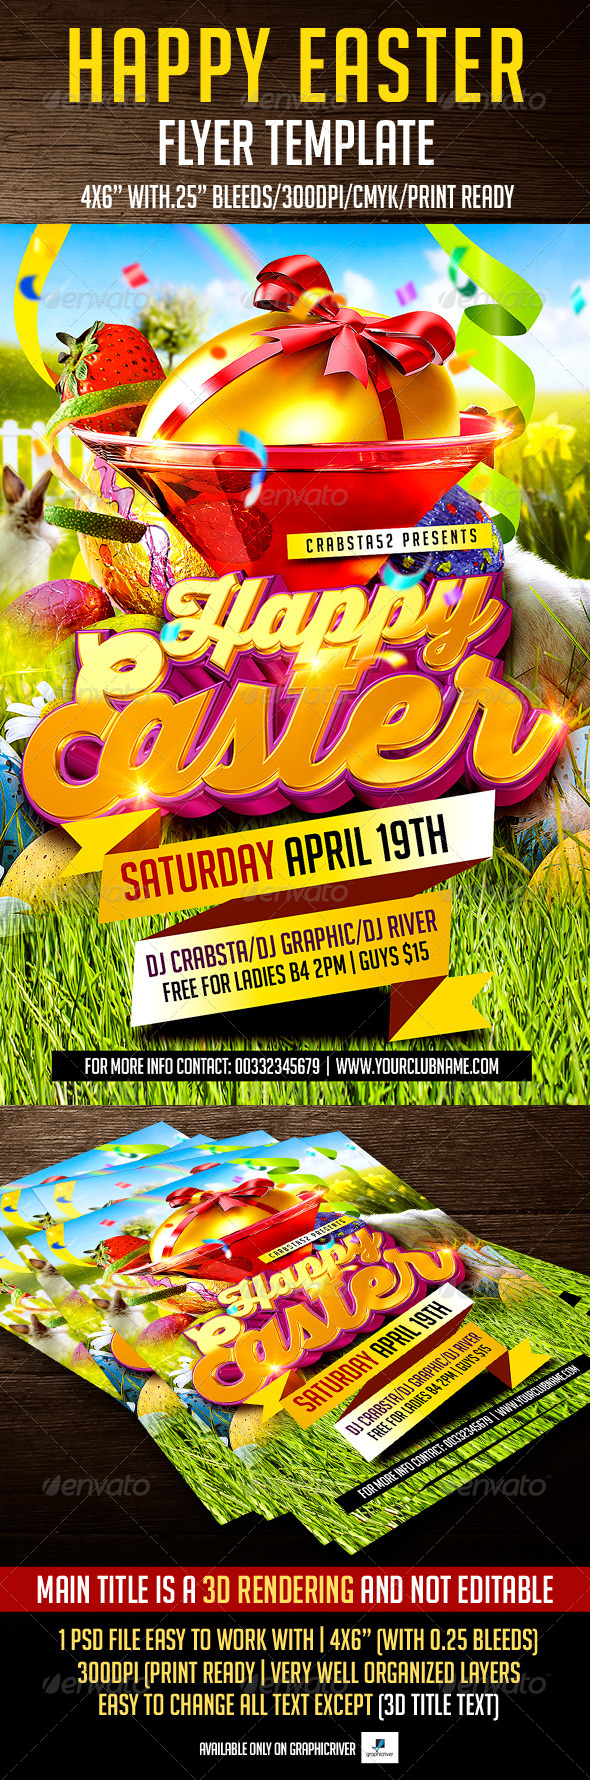 GraphicRiver Happy Easter Flyer Template 7403629